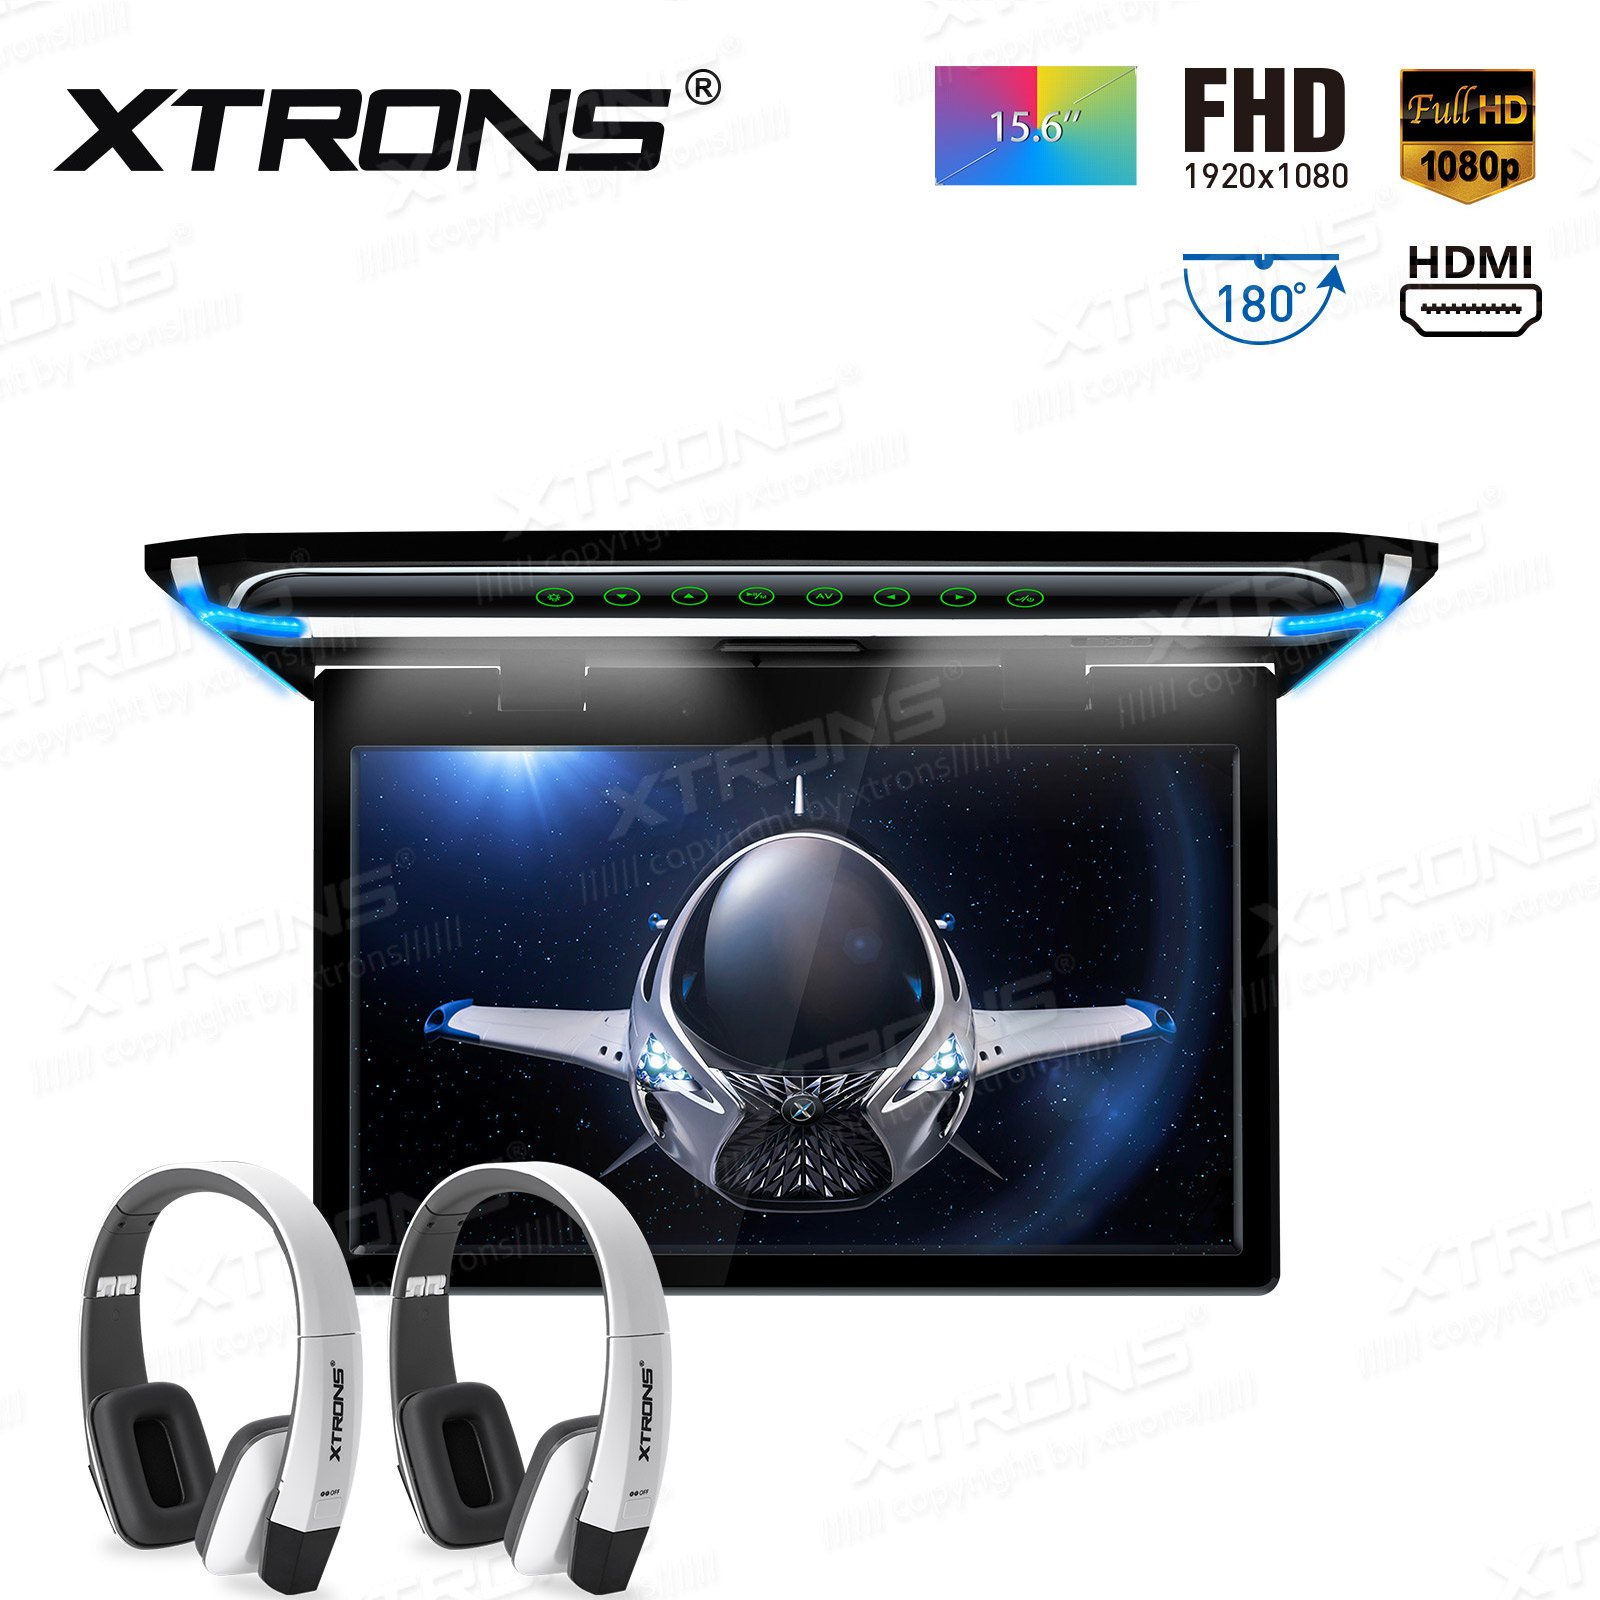 XTRONS 15.6 Inch Ultra-Thin FHD Digital TFT Screen 1080P Video Car Overhead Player Roof Mounted Monitor HDMI Port White New Version IR Headphones